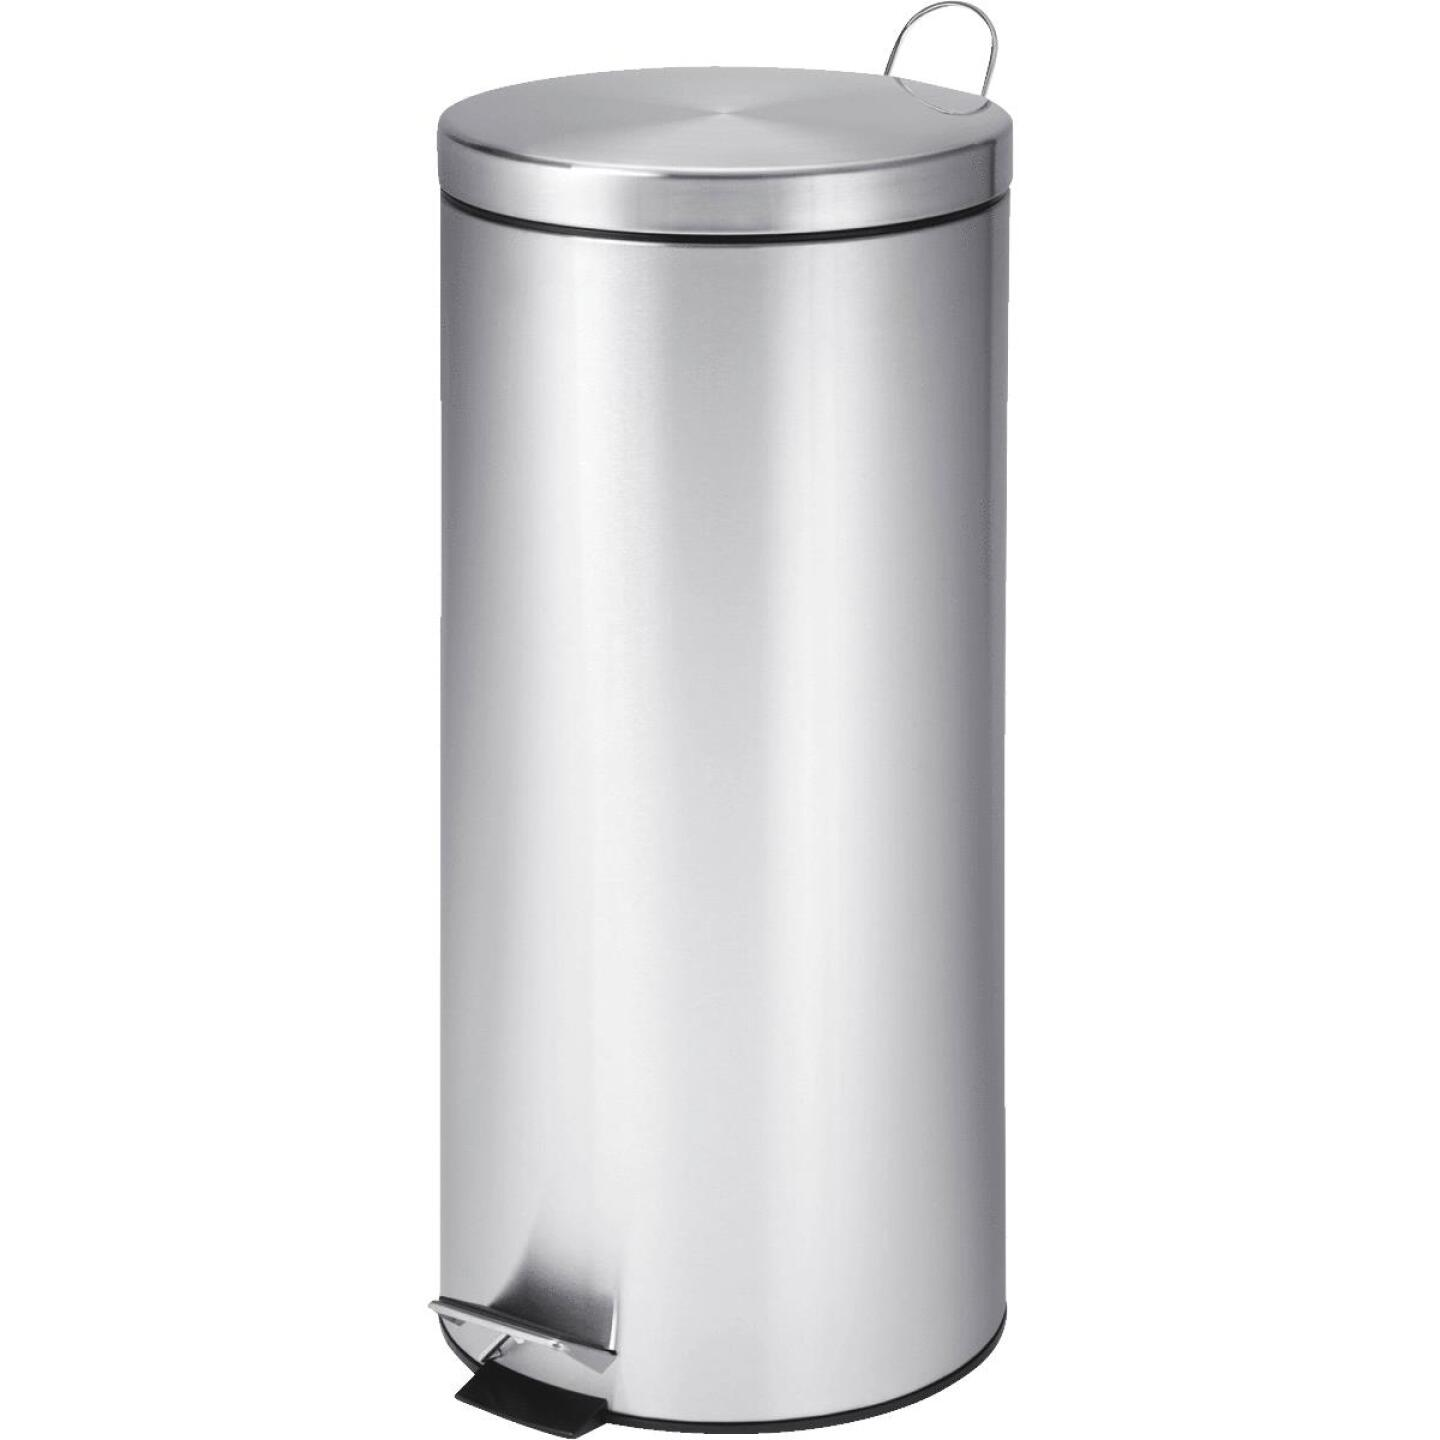 Honey Can Do 30 Liter Stainless Steel Step-On Wastebasket Image 1